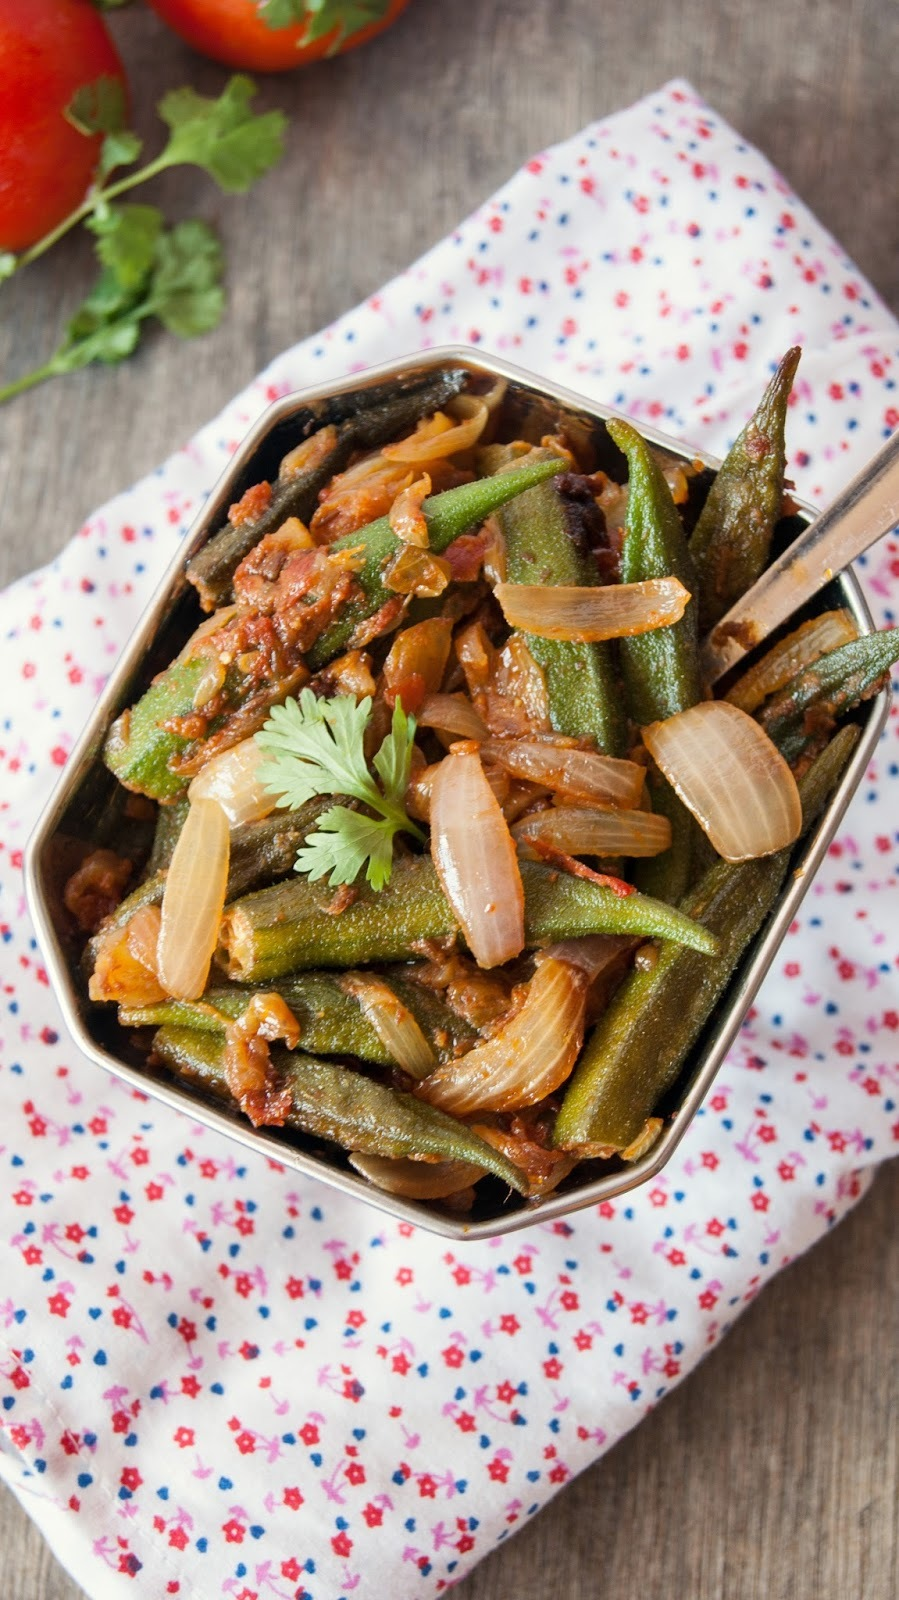 Bhindi Masala / Okra with Onion and Tomatoes